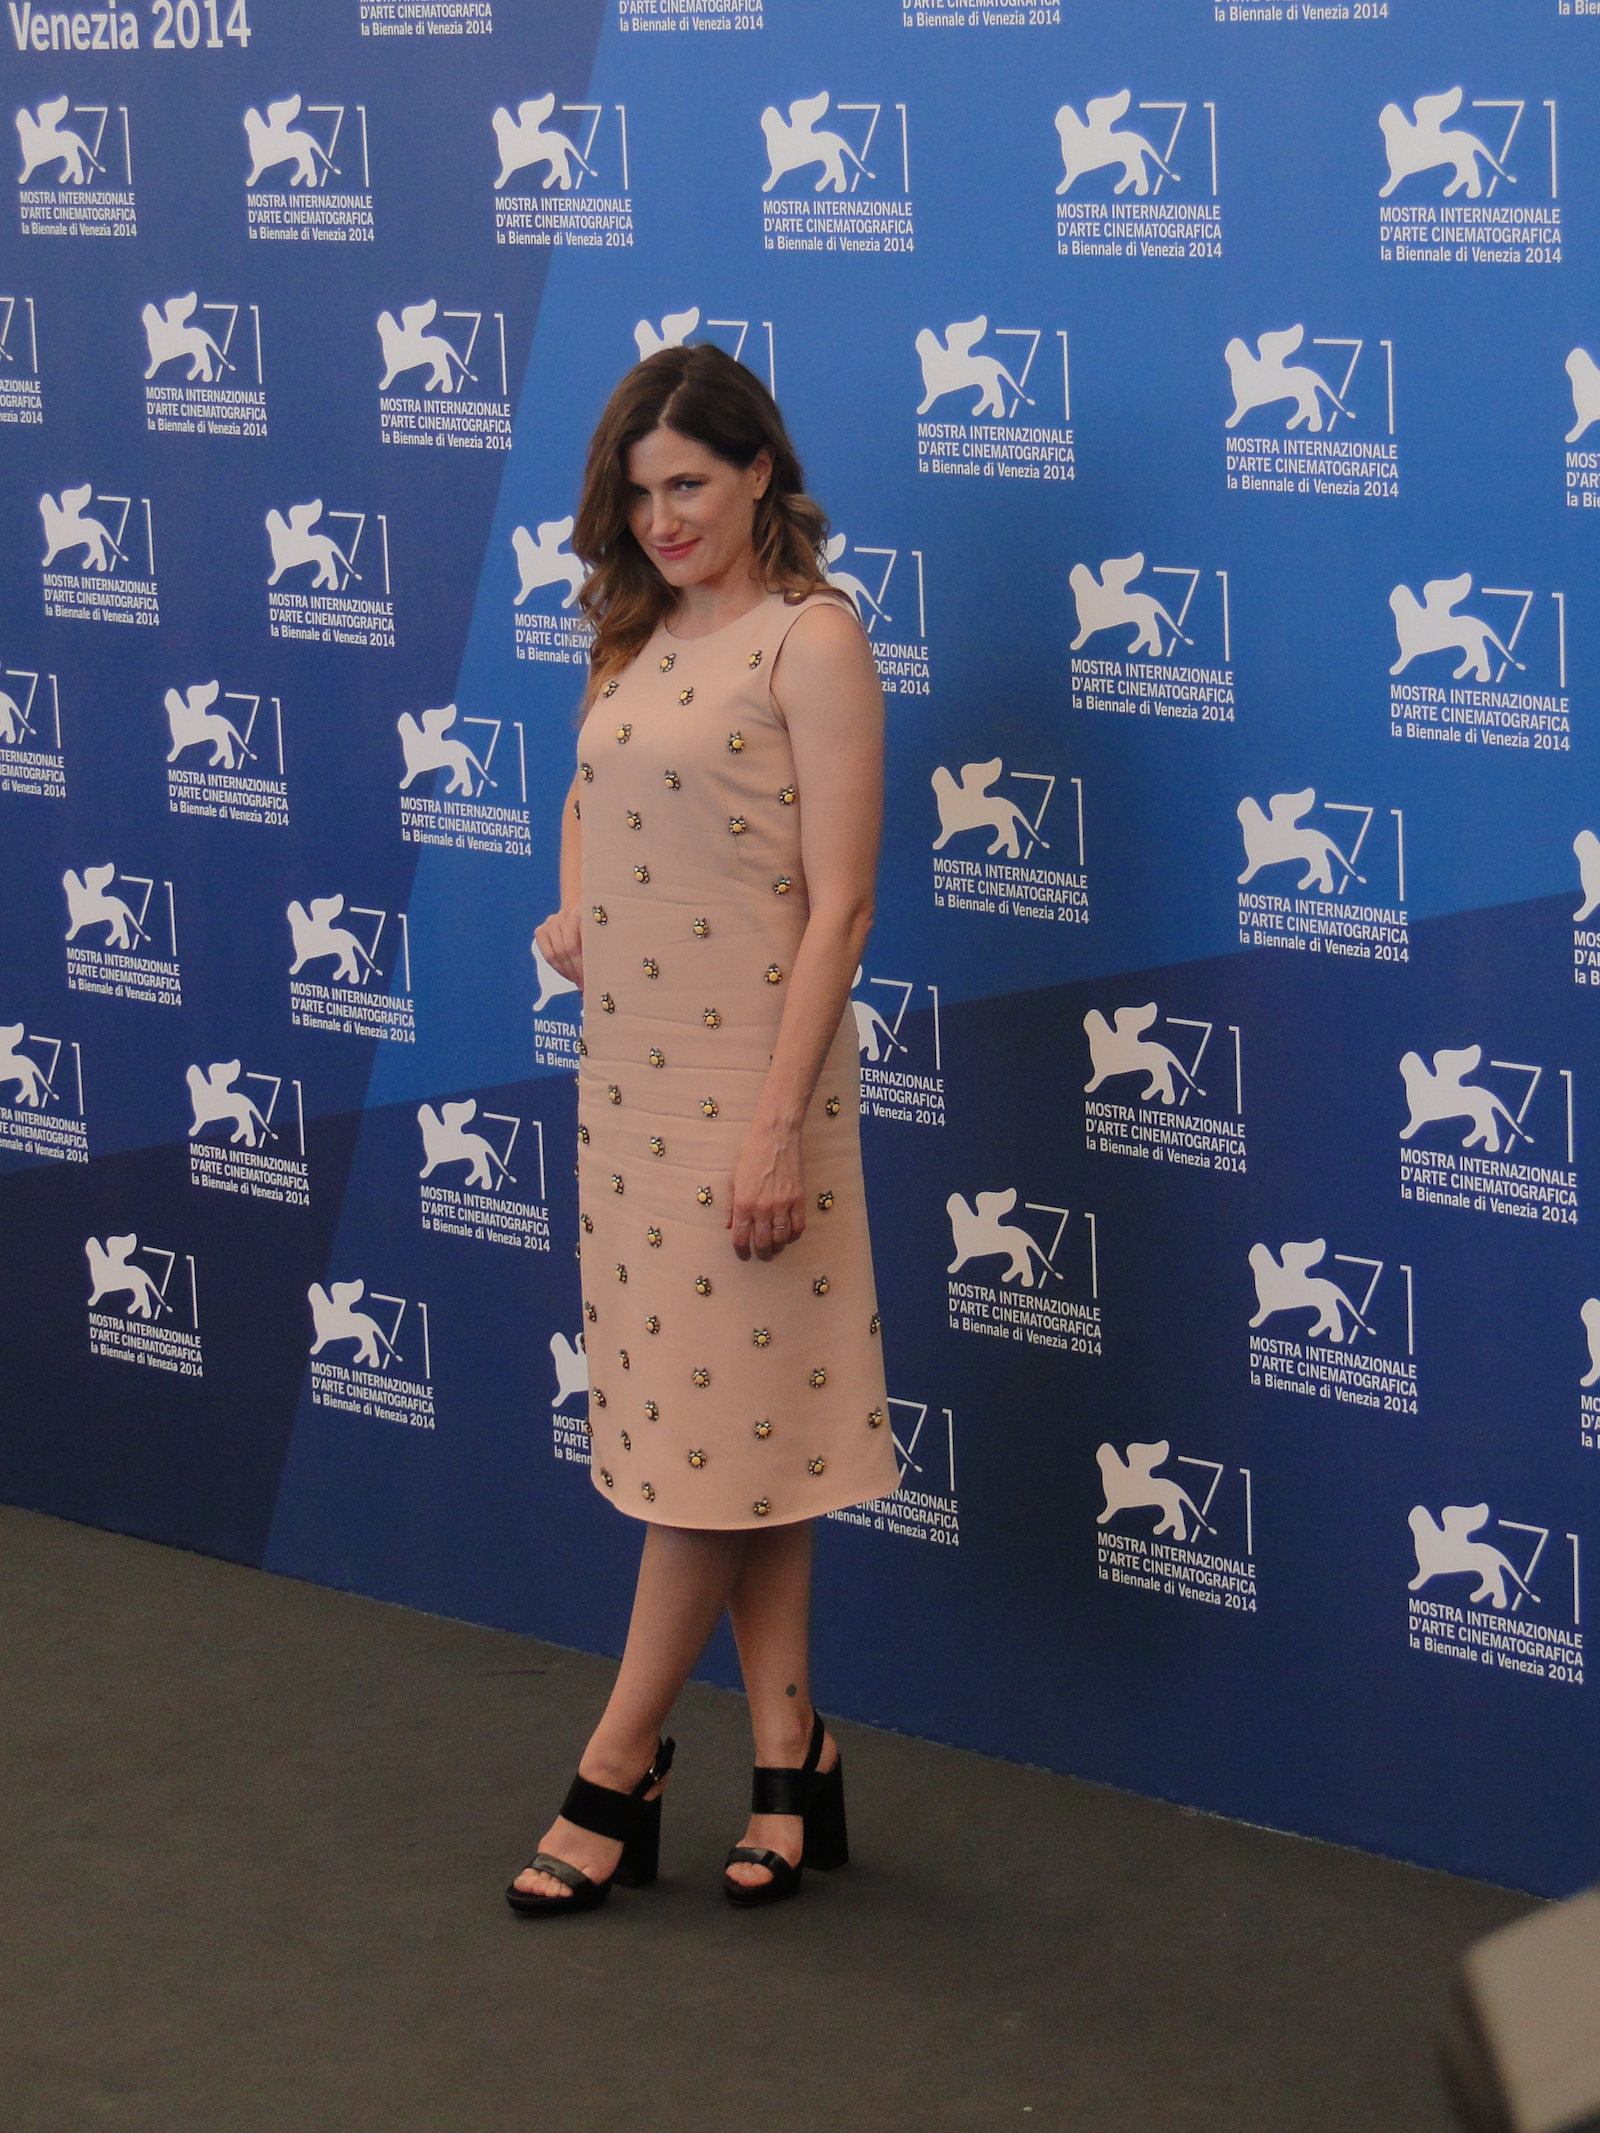 Venezia 2014: Kathryn Hahn posa al photocall di She's Funny That Way